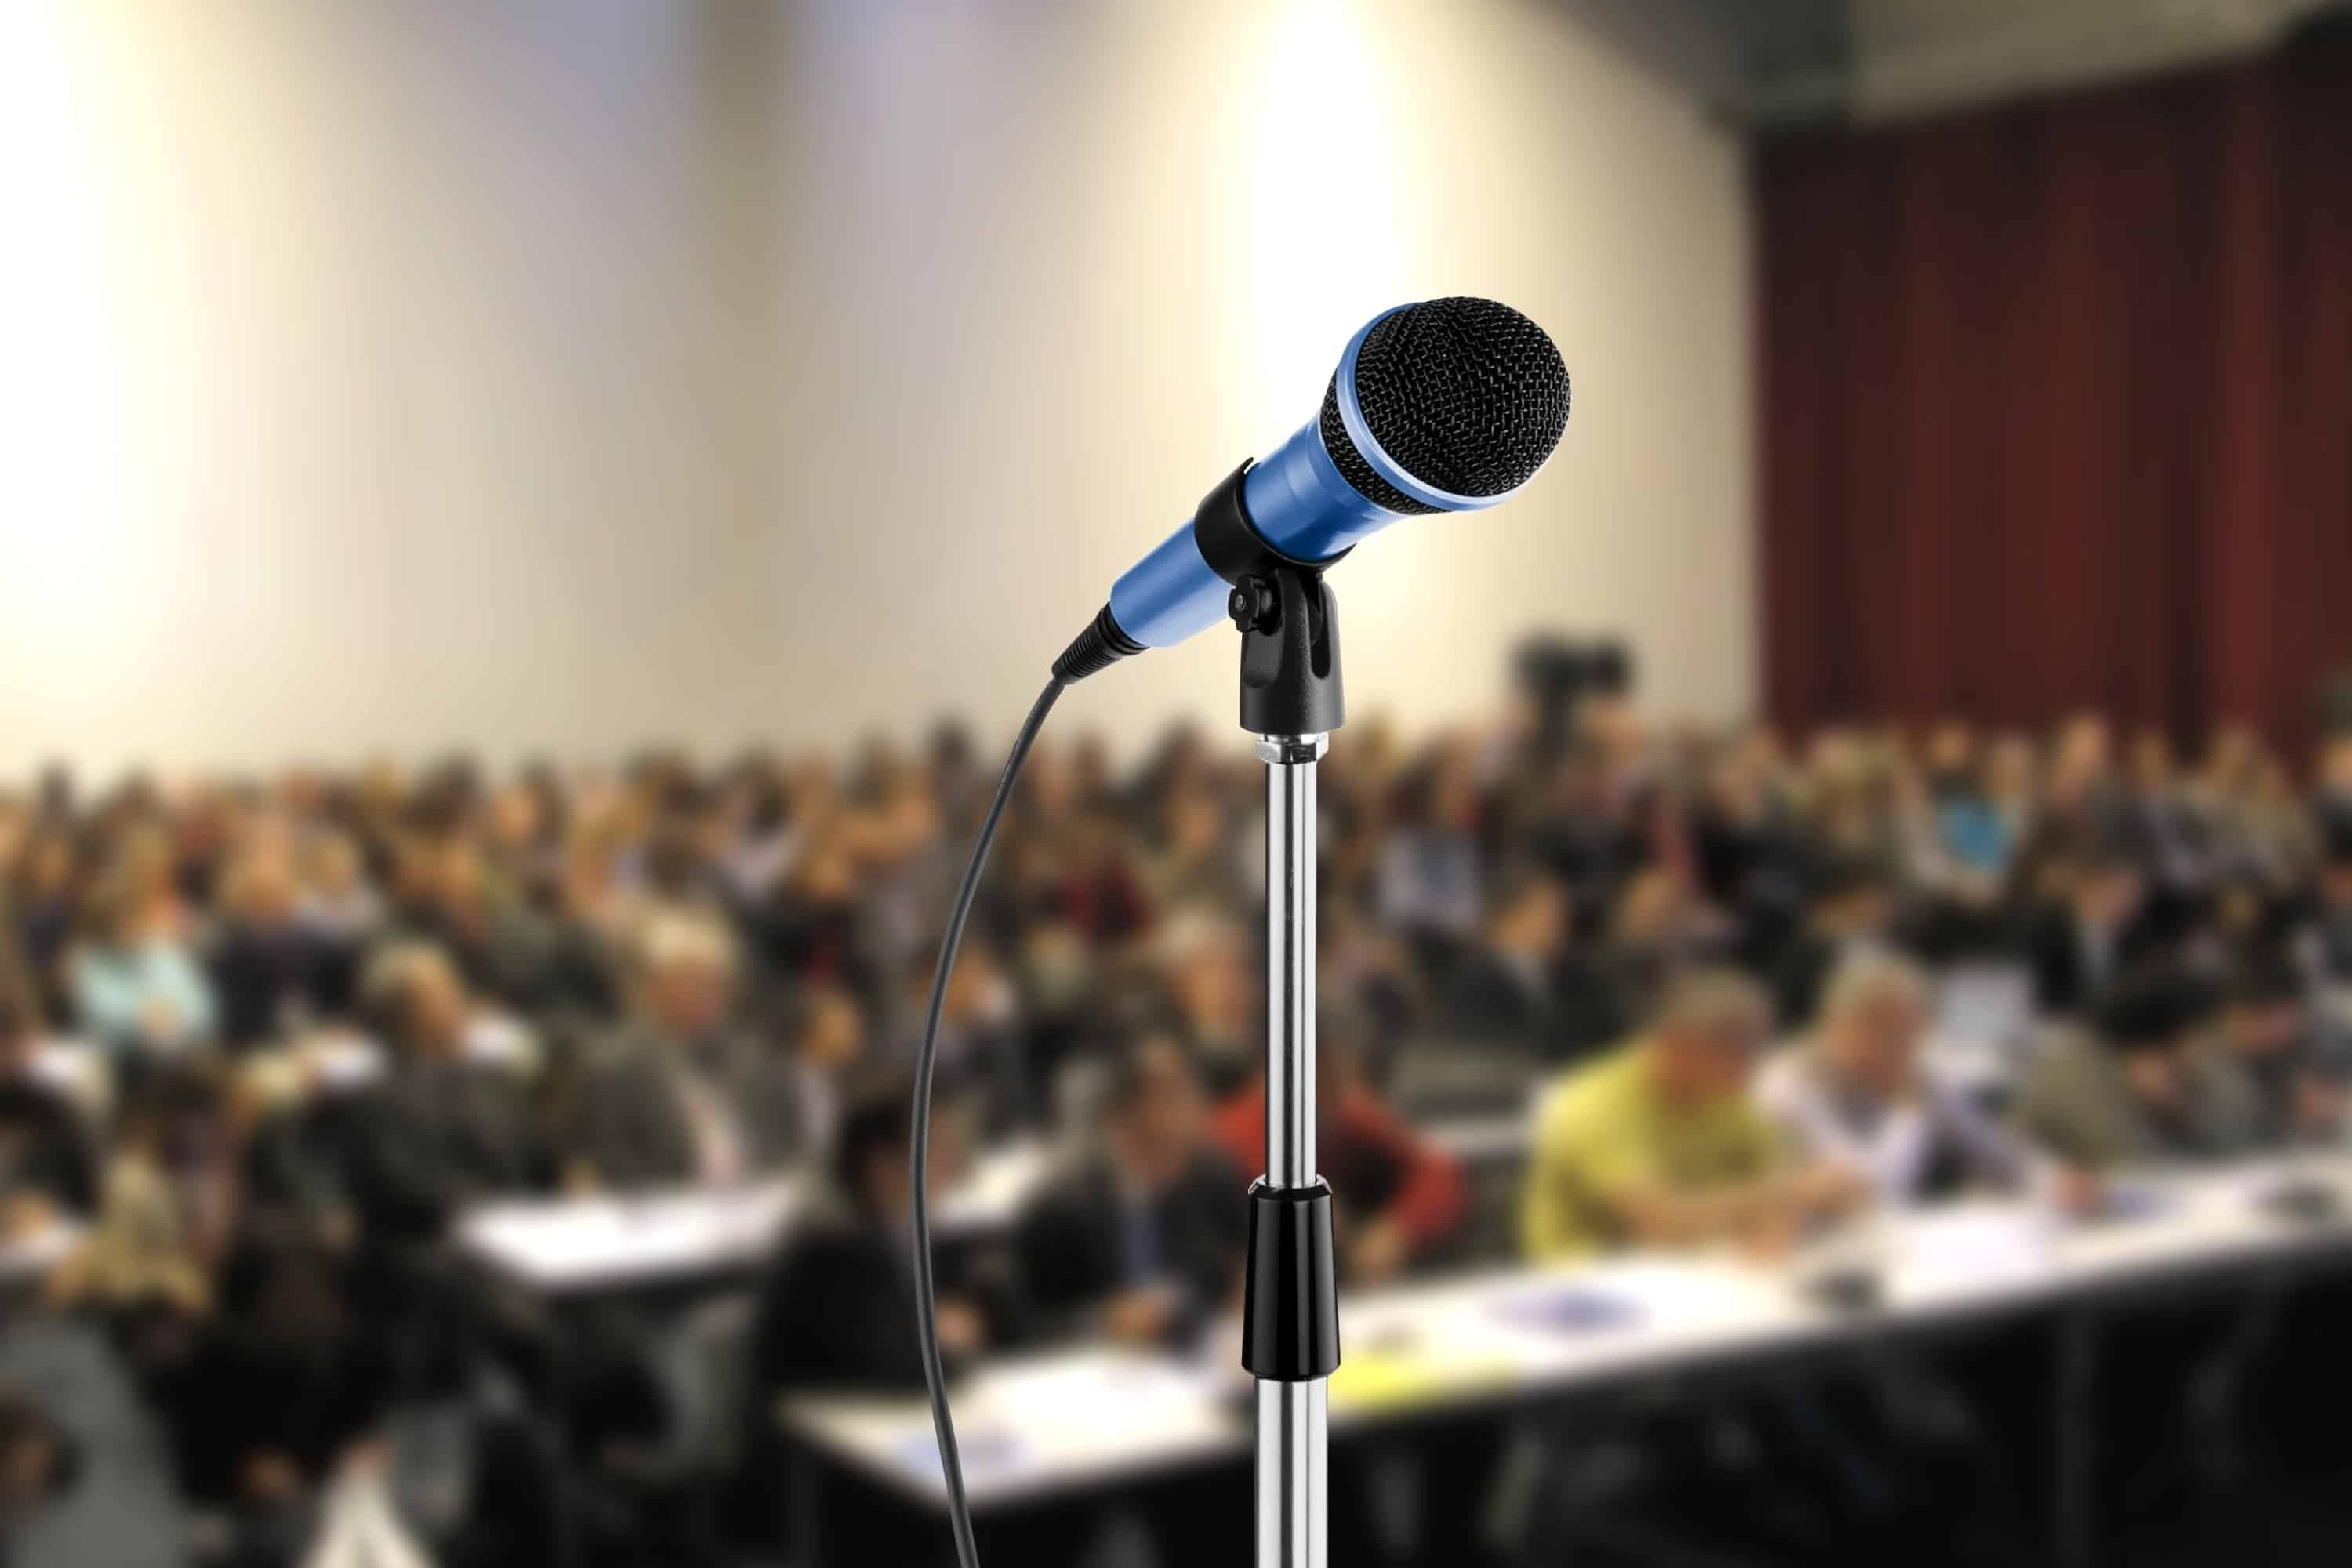 Speaking and conferences